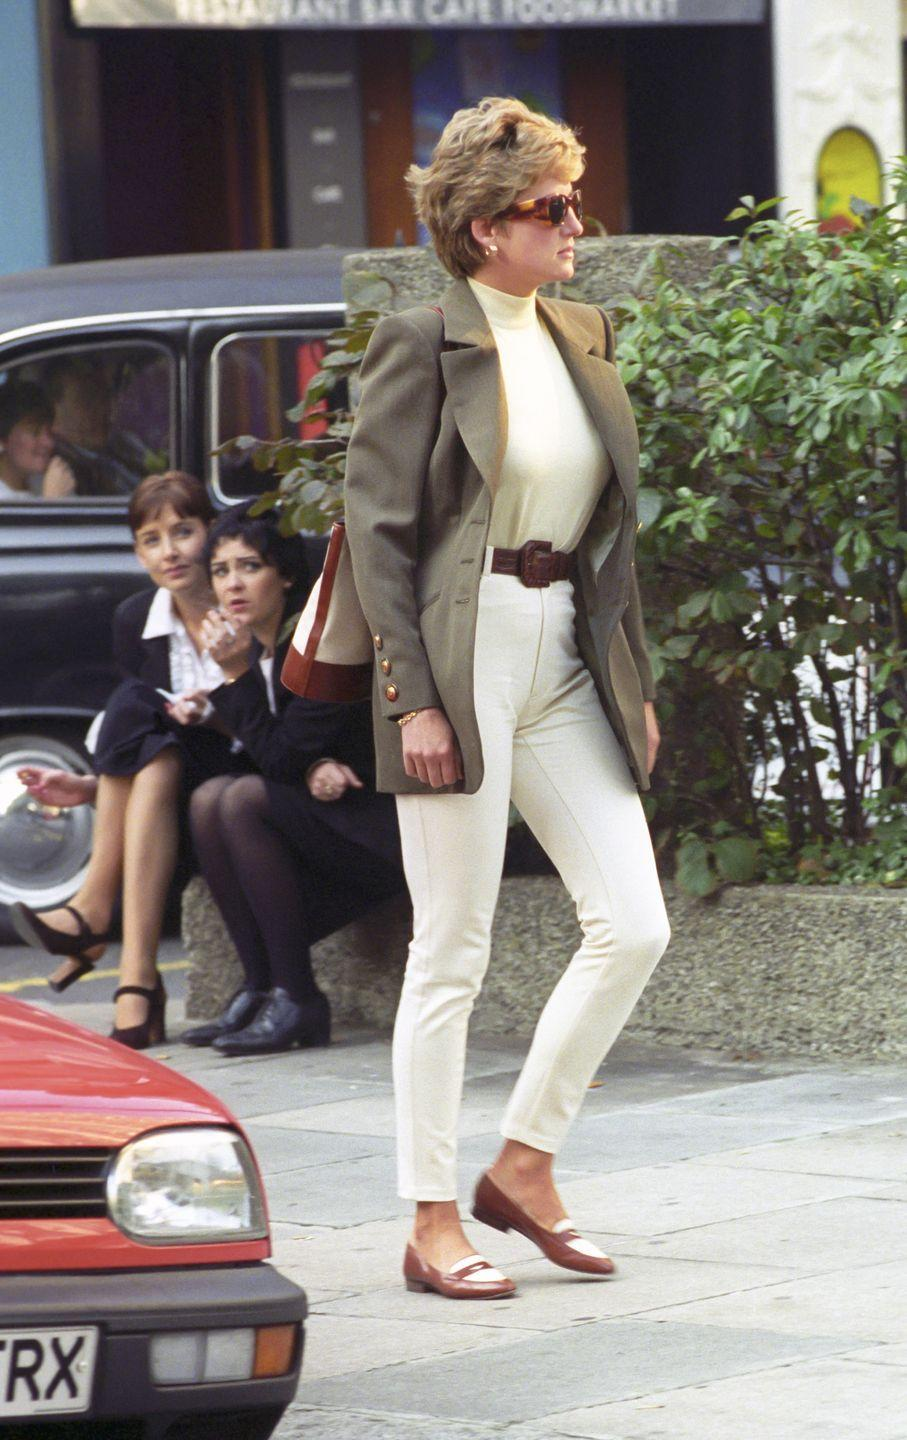 <p>Princess Diana was spotted shopping in Knightsbridge in 1994 wearing an ivory outfit with tan accessories, topped with an olive green blazer. </p>